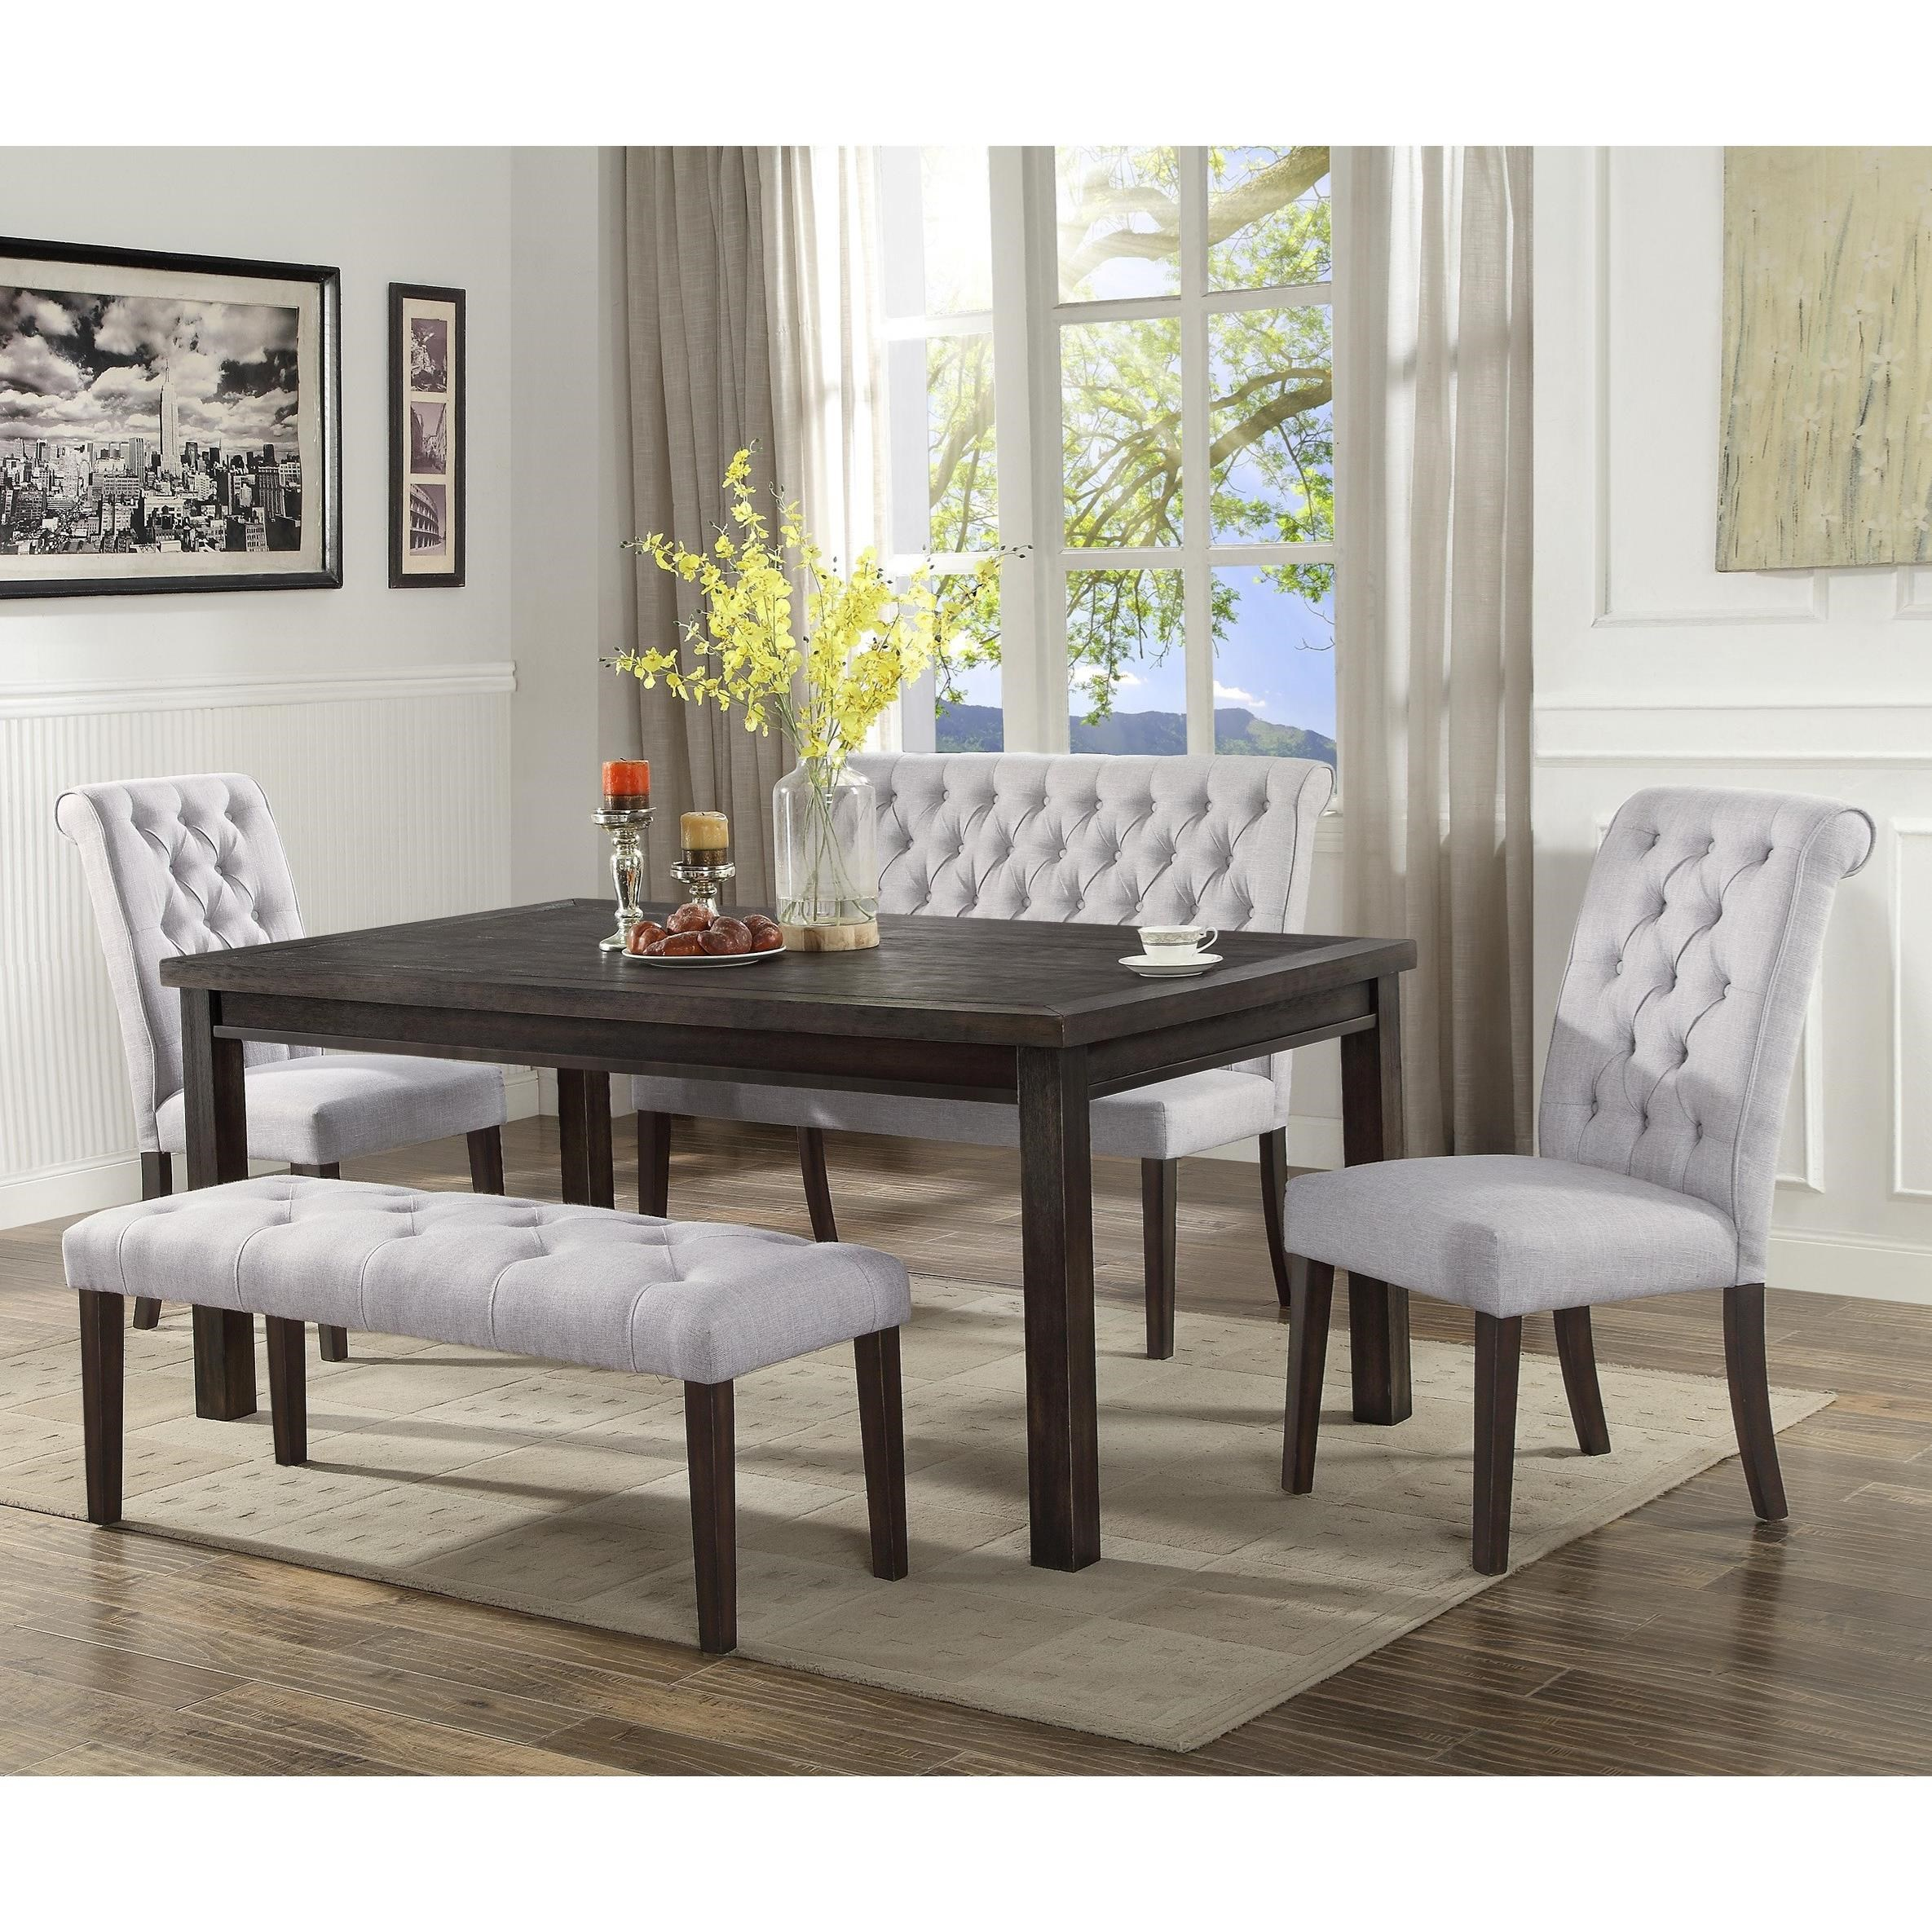 Crown Mark Palmer Dining Transitional Dining Set With Two Benches Dunk Bright Furniture Table Chair Set With Bench